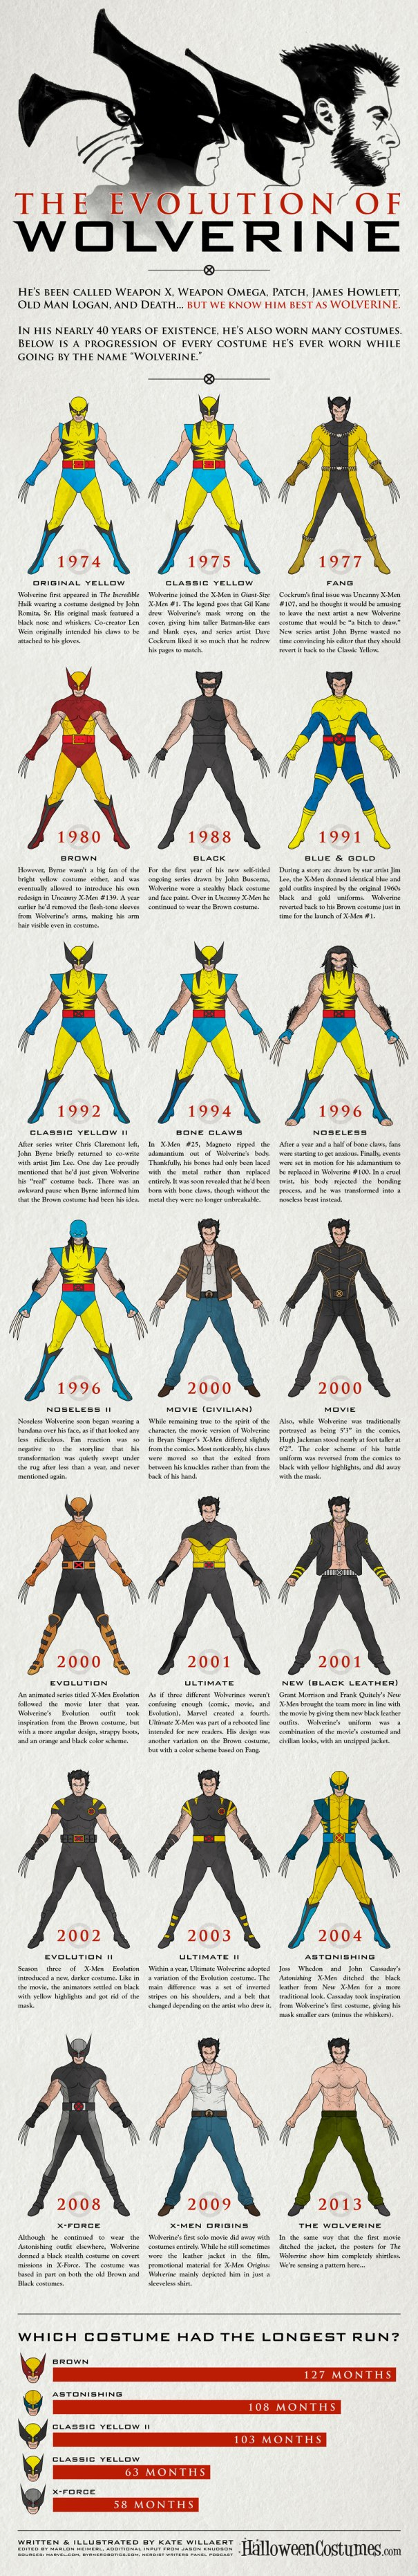 Evolution-of-Wolverine-Infographic-FULL